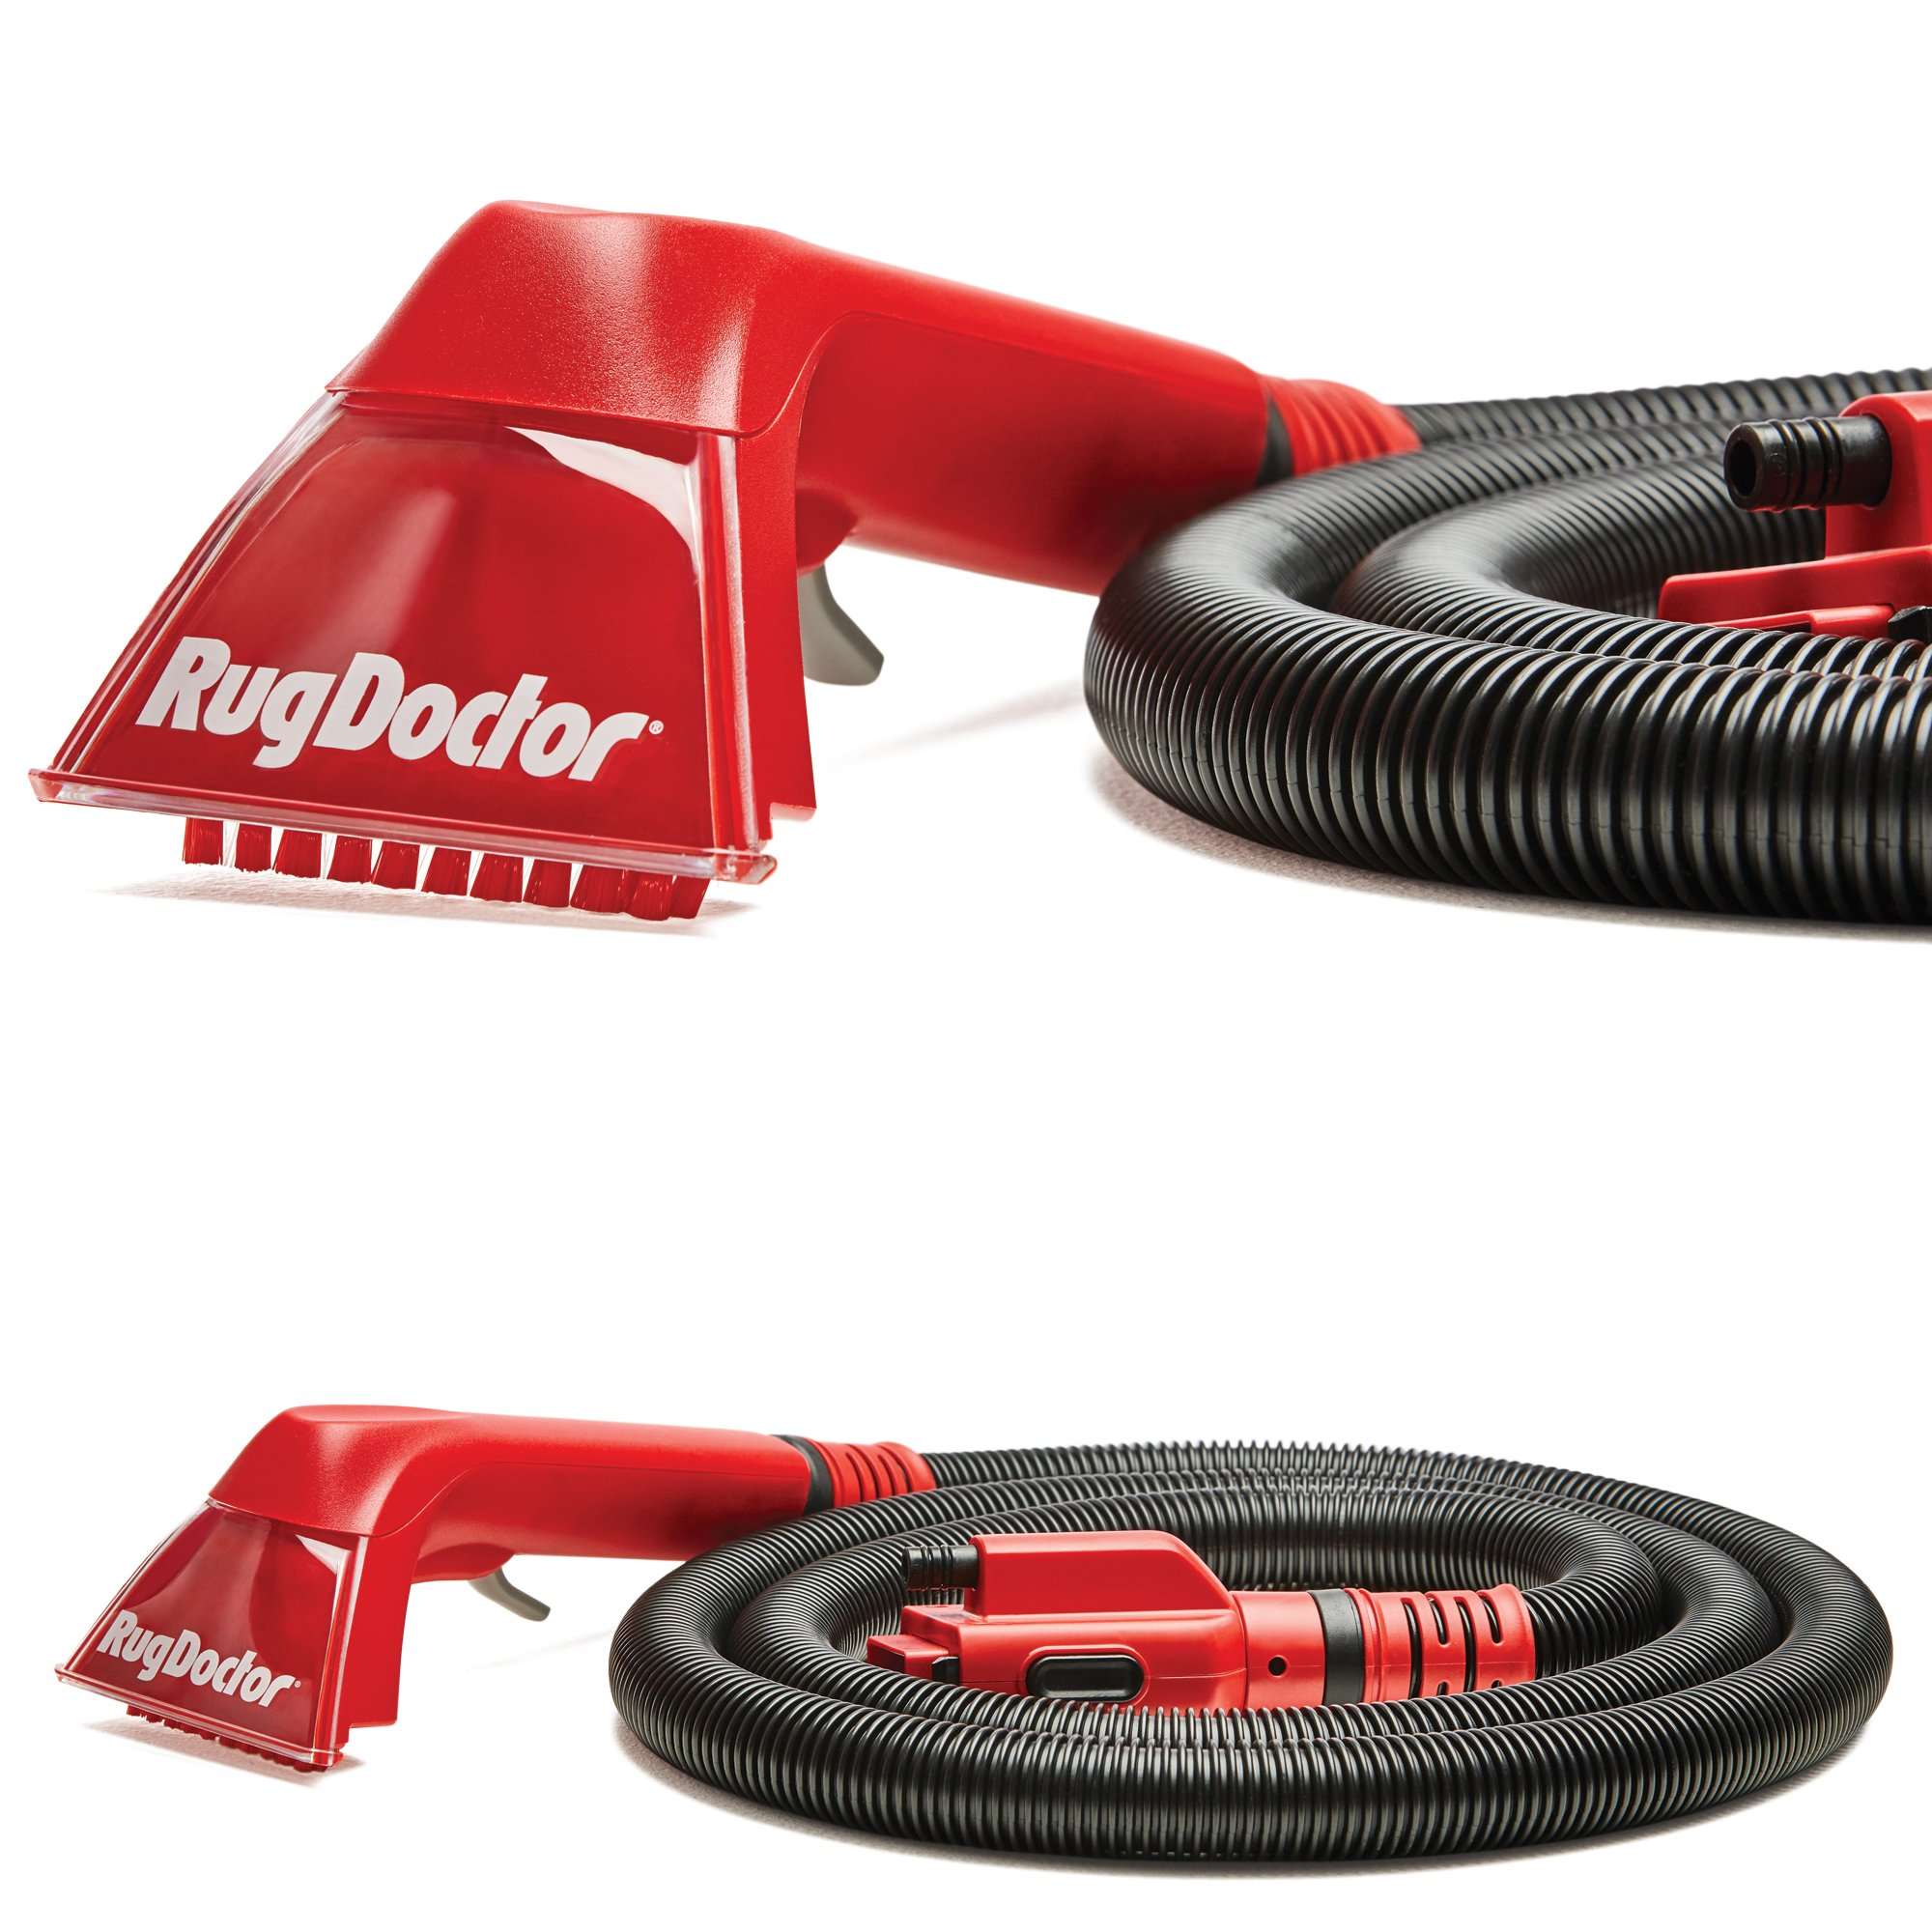 Rug Doctor Flexclean Upholstery Tool 7 6 Foot Hose With